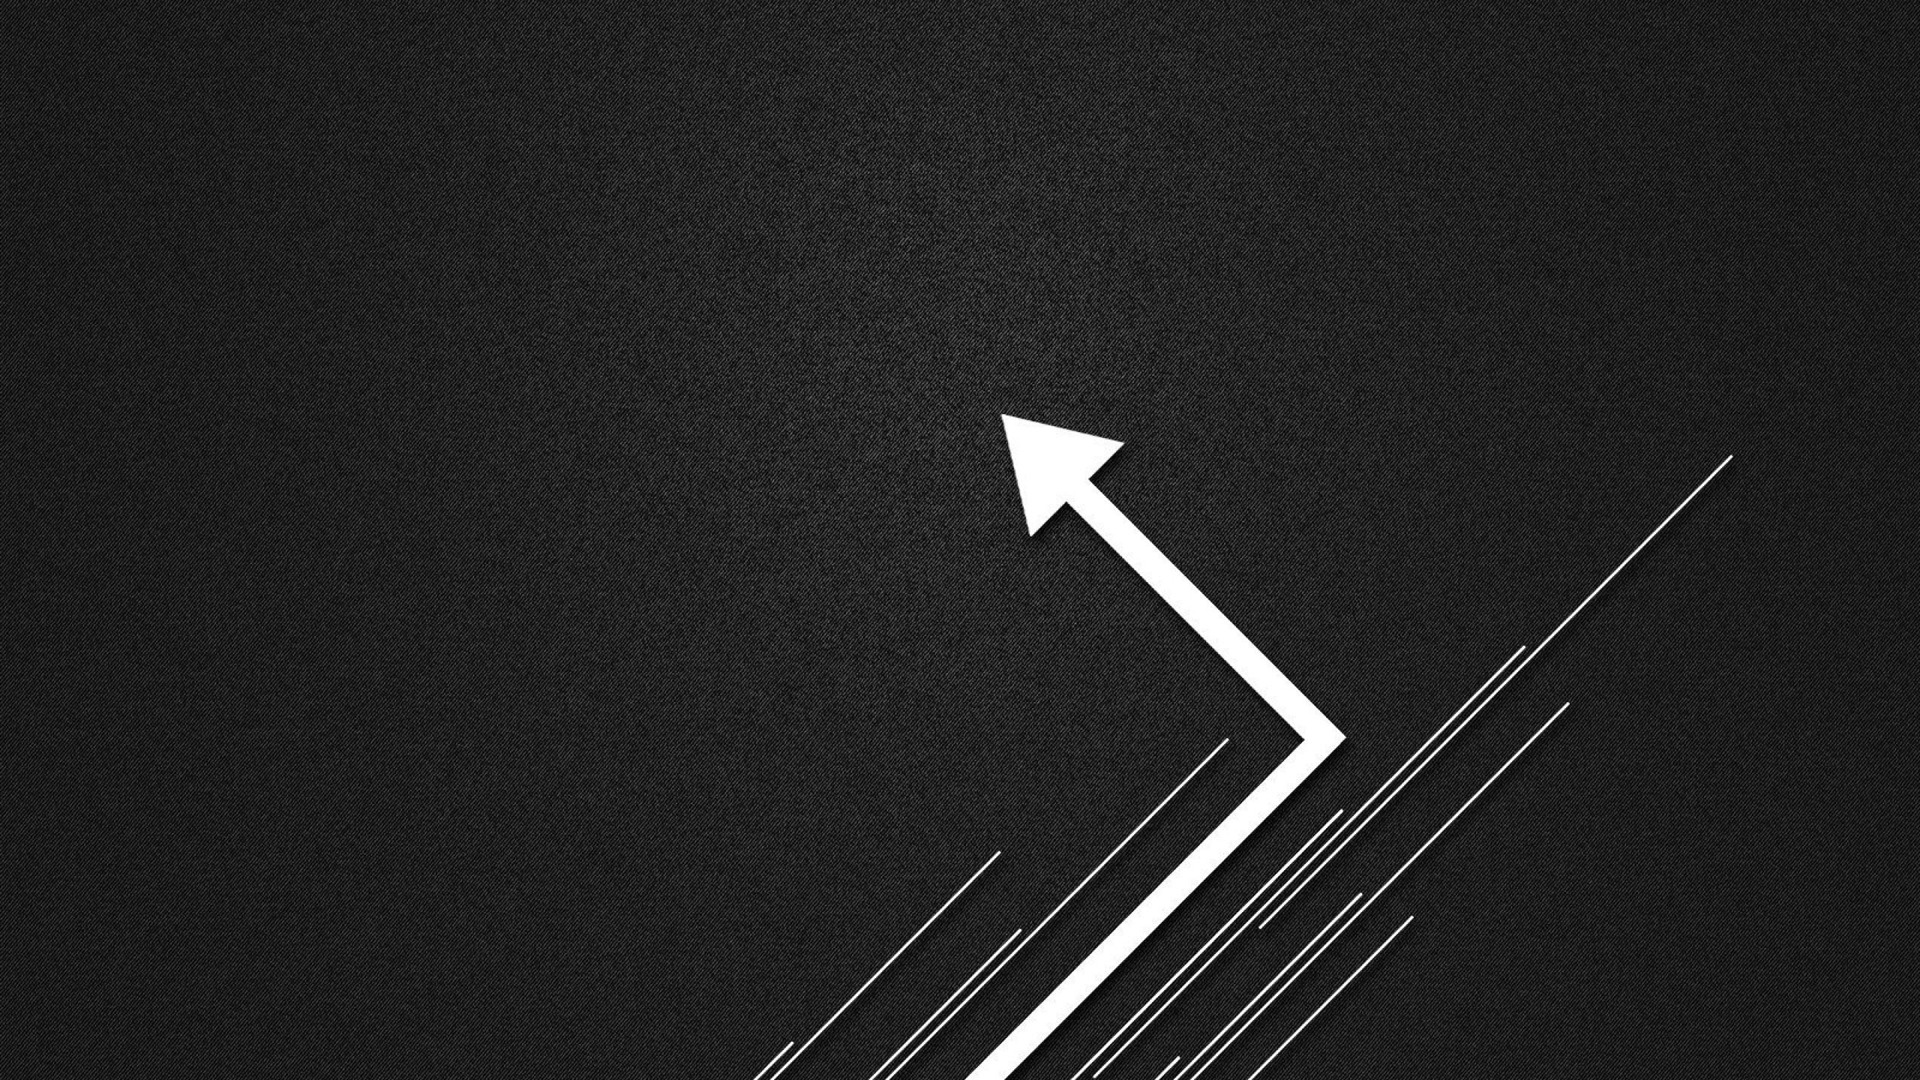 Arrow Lines Abstract design wallpaper HD Wallpaper Background Photo 1920x1080